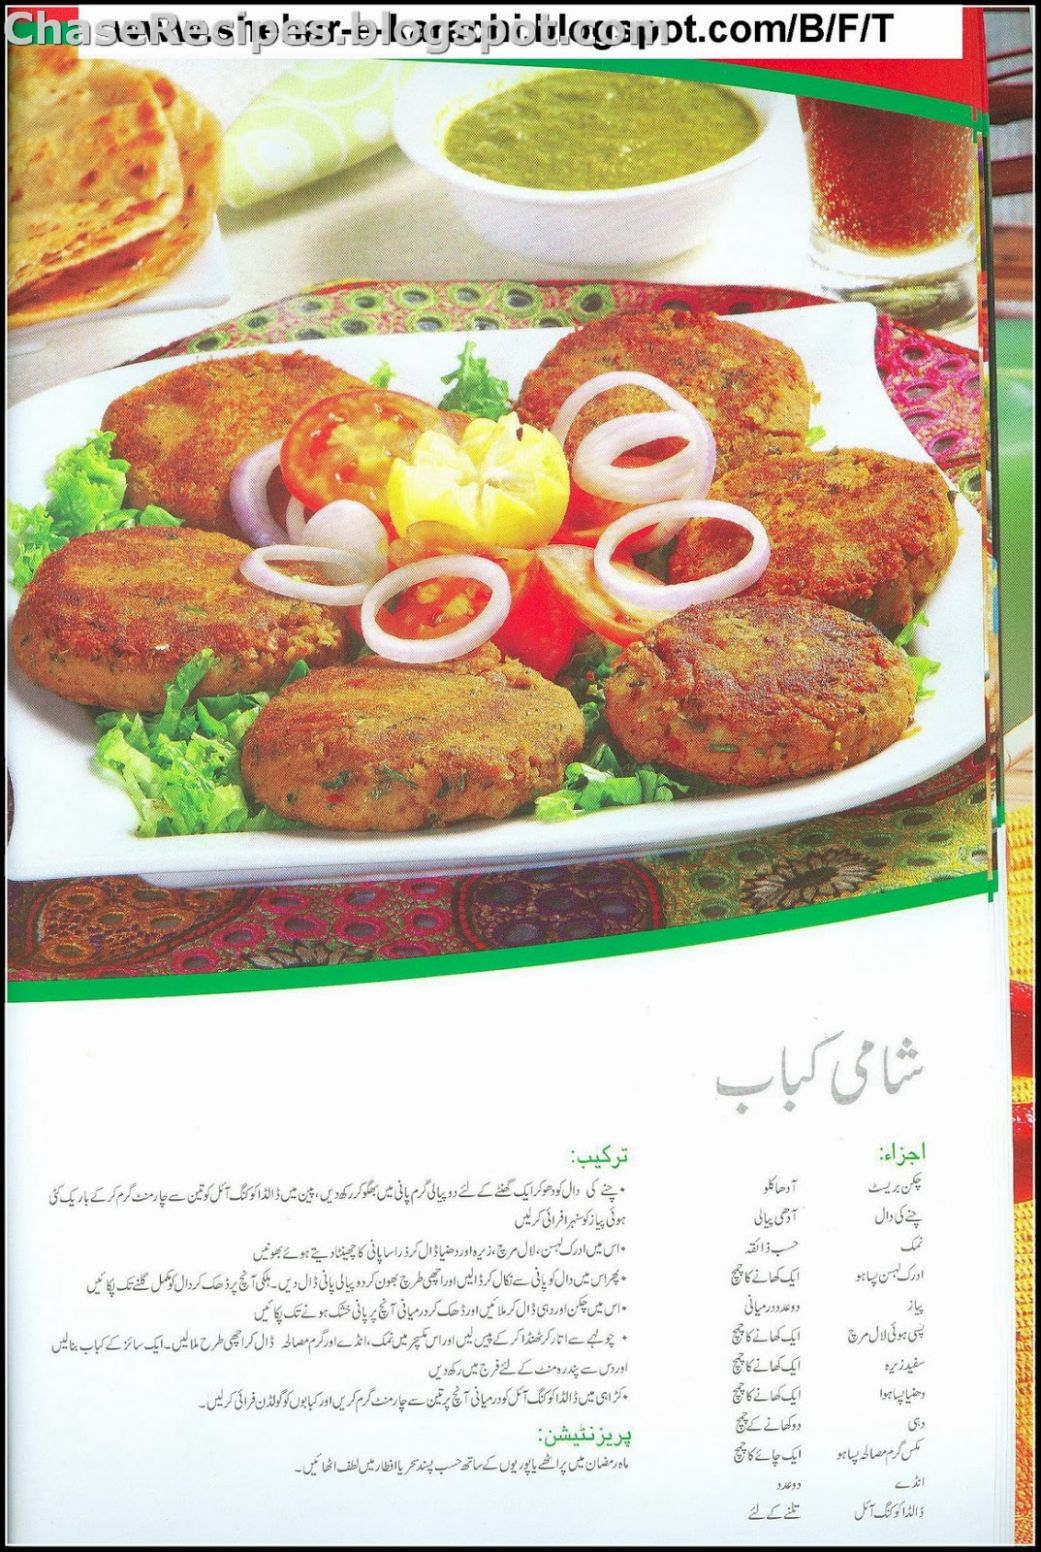 Shami Kabab Urdu Recipe - Get Online - Chase Recipes - Beef Recipes By Chef Zakir In Urdu